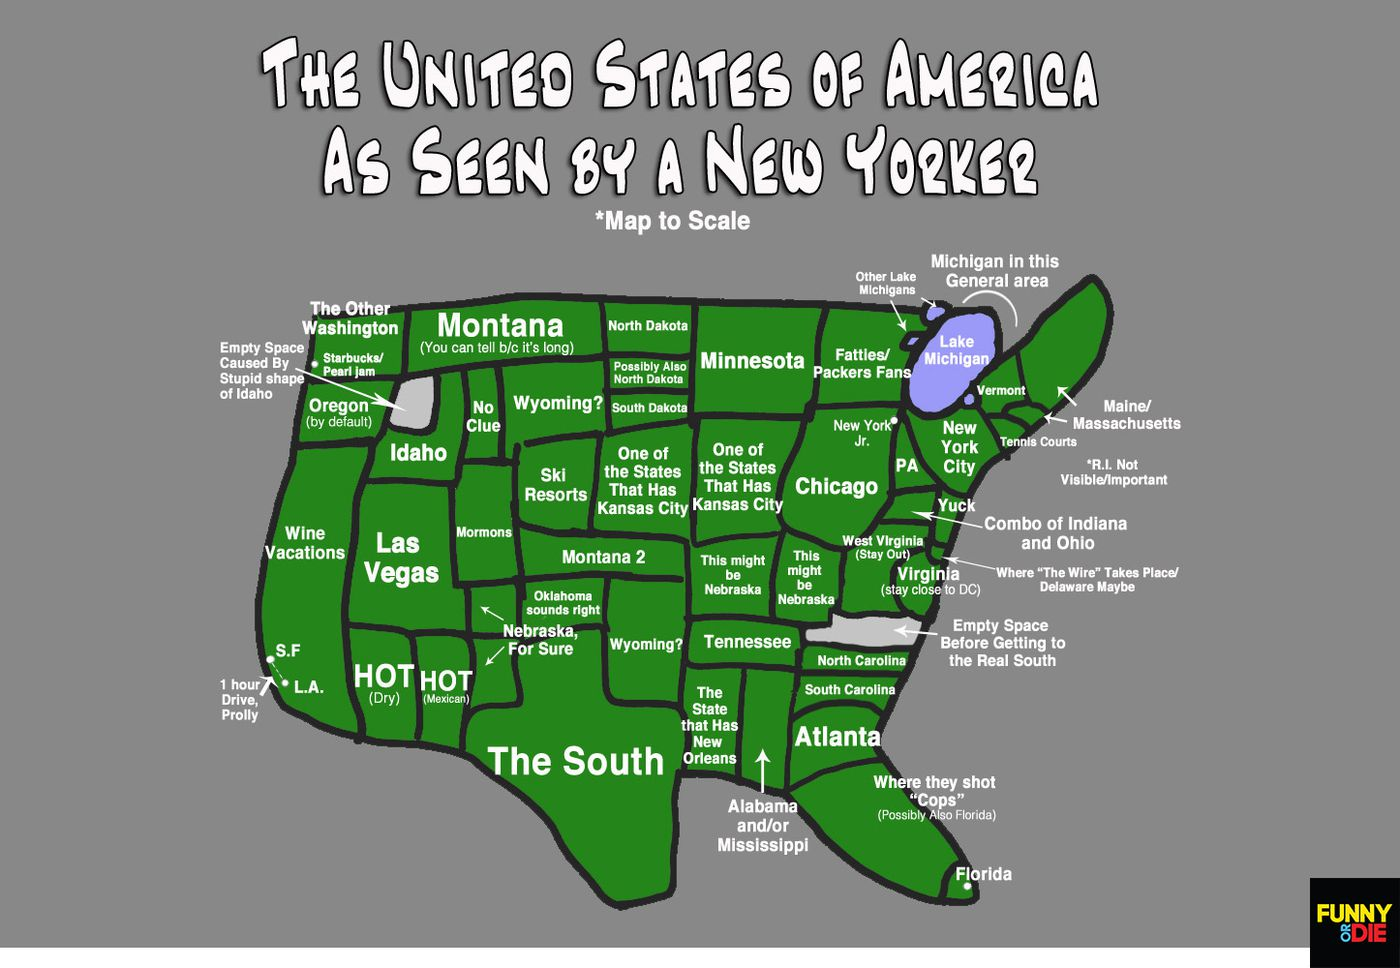 Us Map According To New Yorkers The Map Of America As Seen By A New Yorker   Funny Or Die